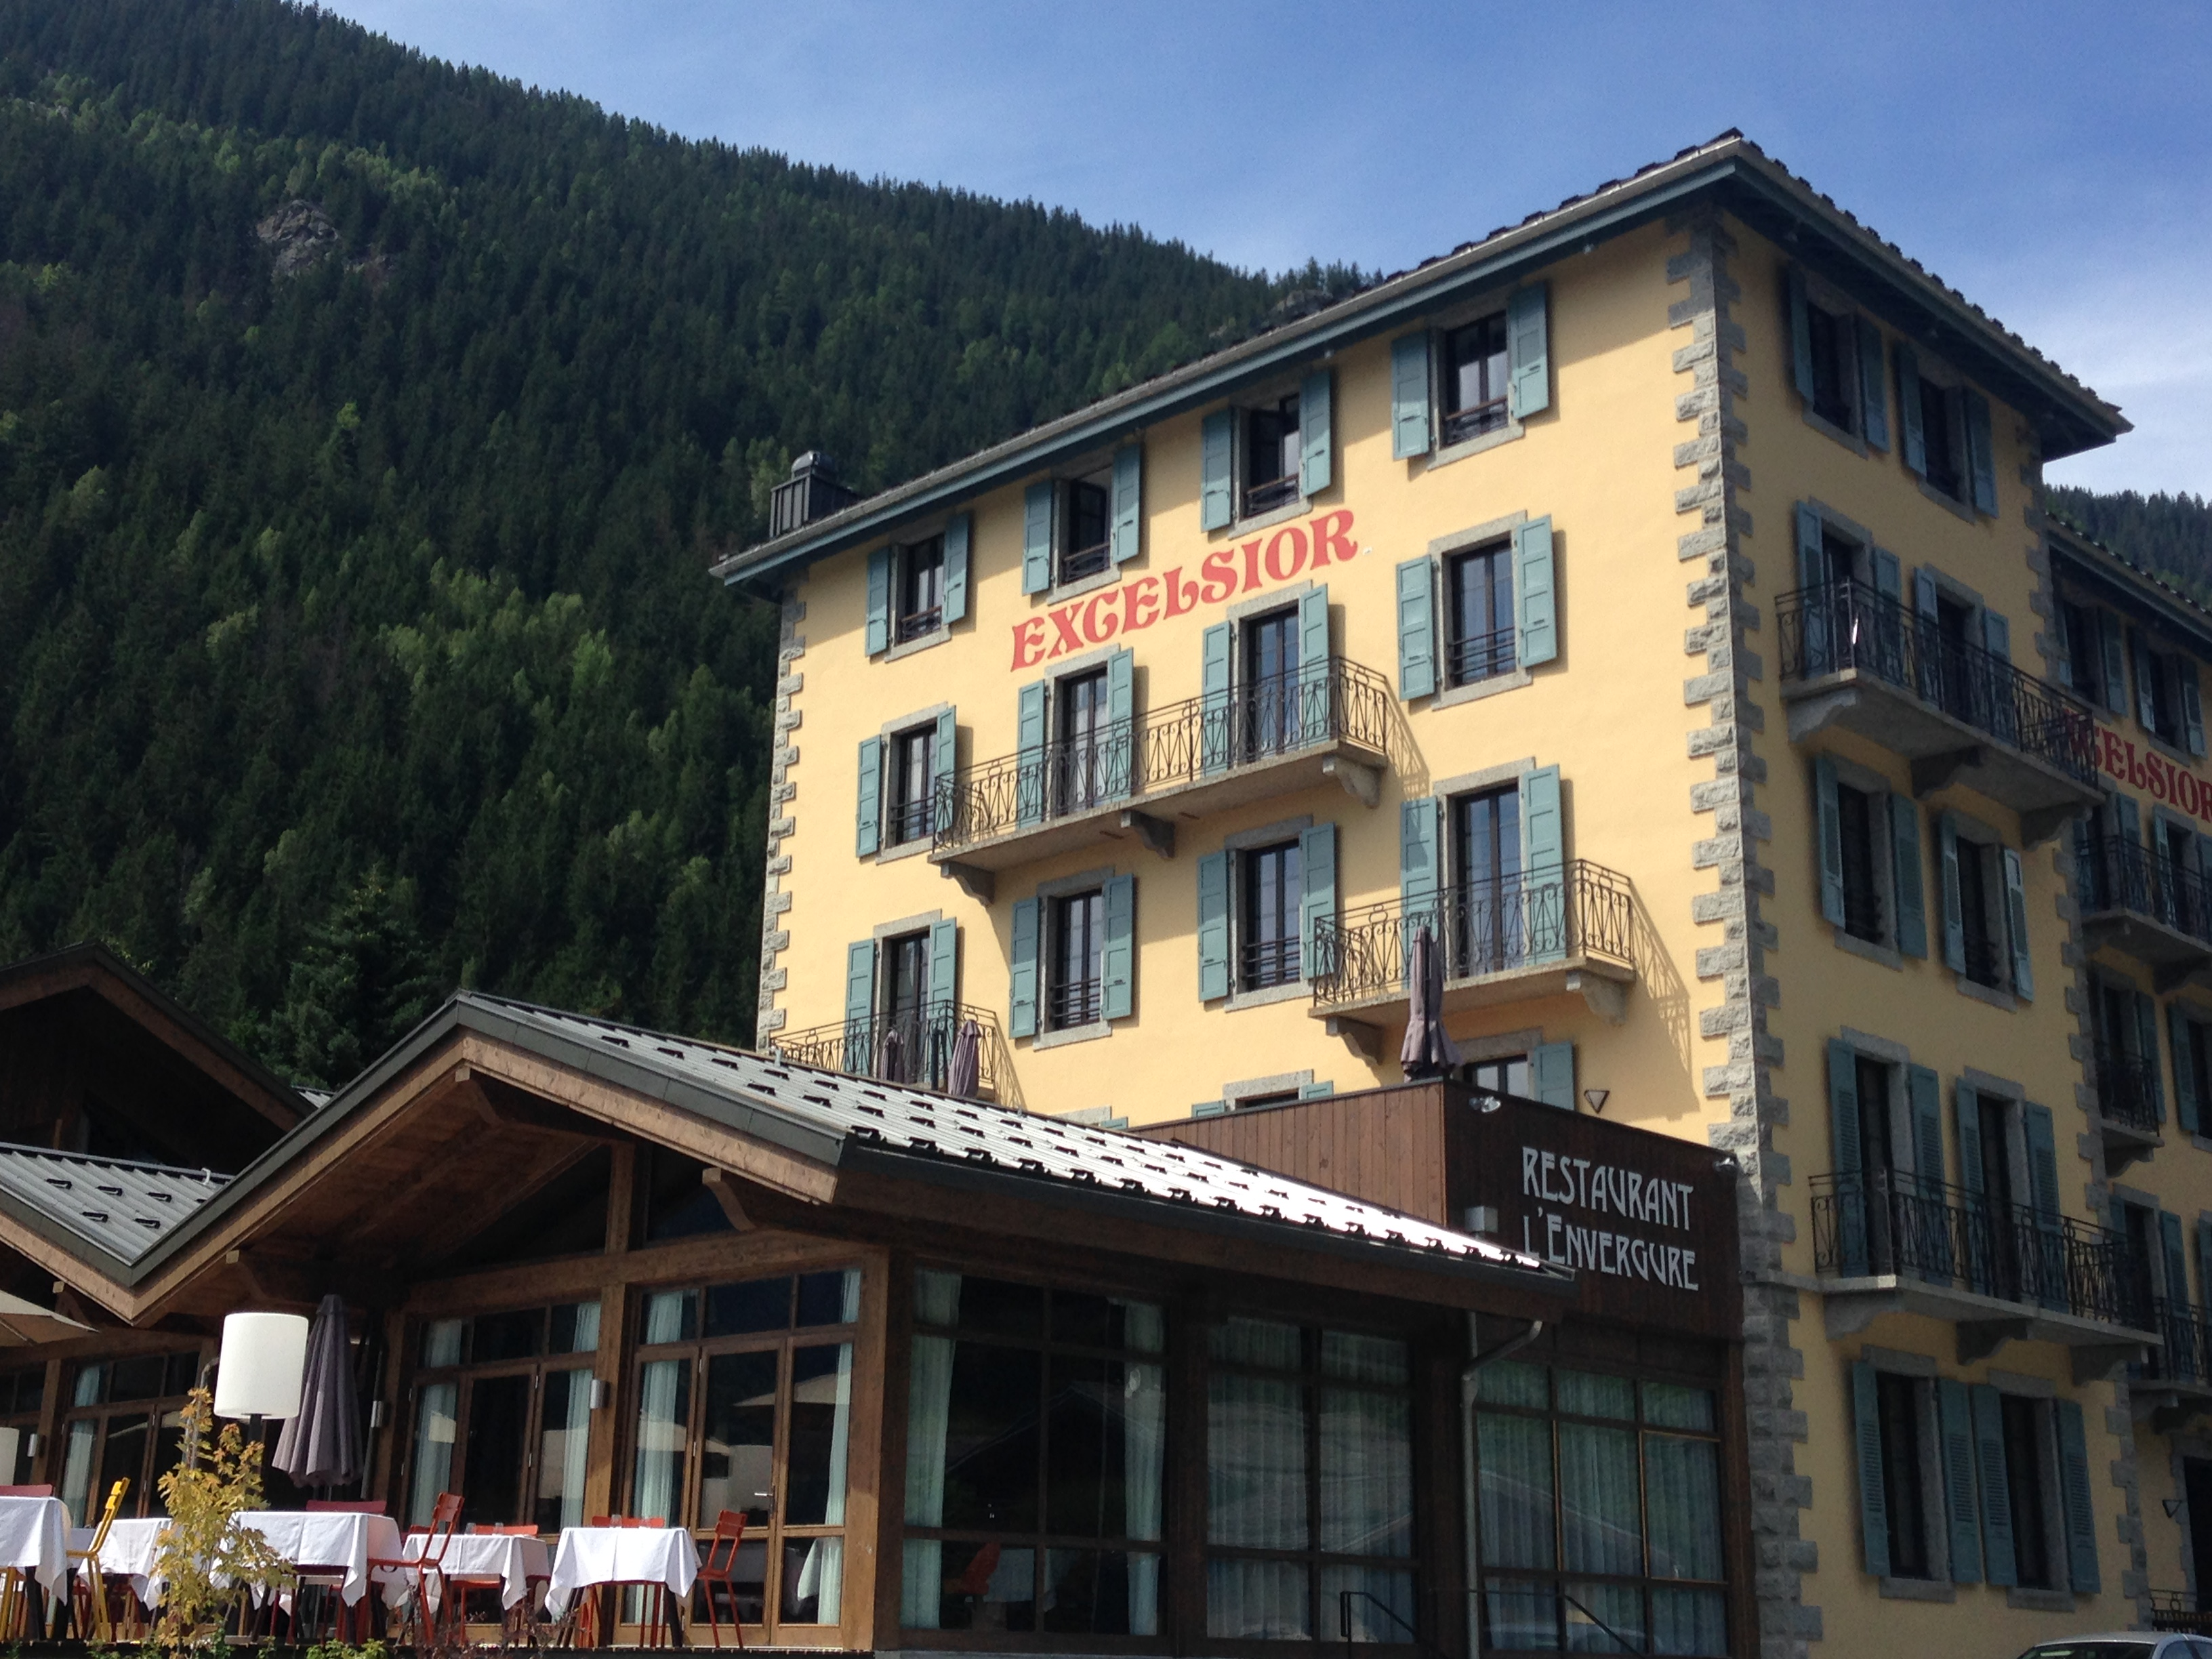 Best western plus excelsior chamonix hotel spa in chamonix for Hotels chamonix